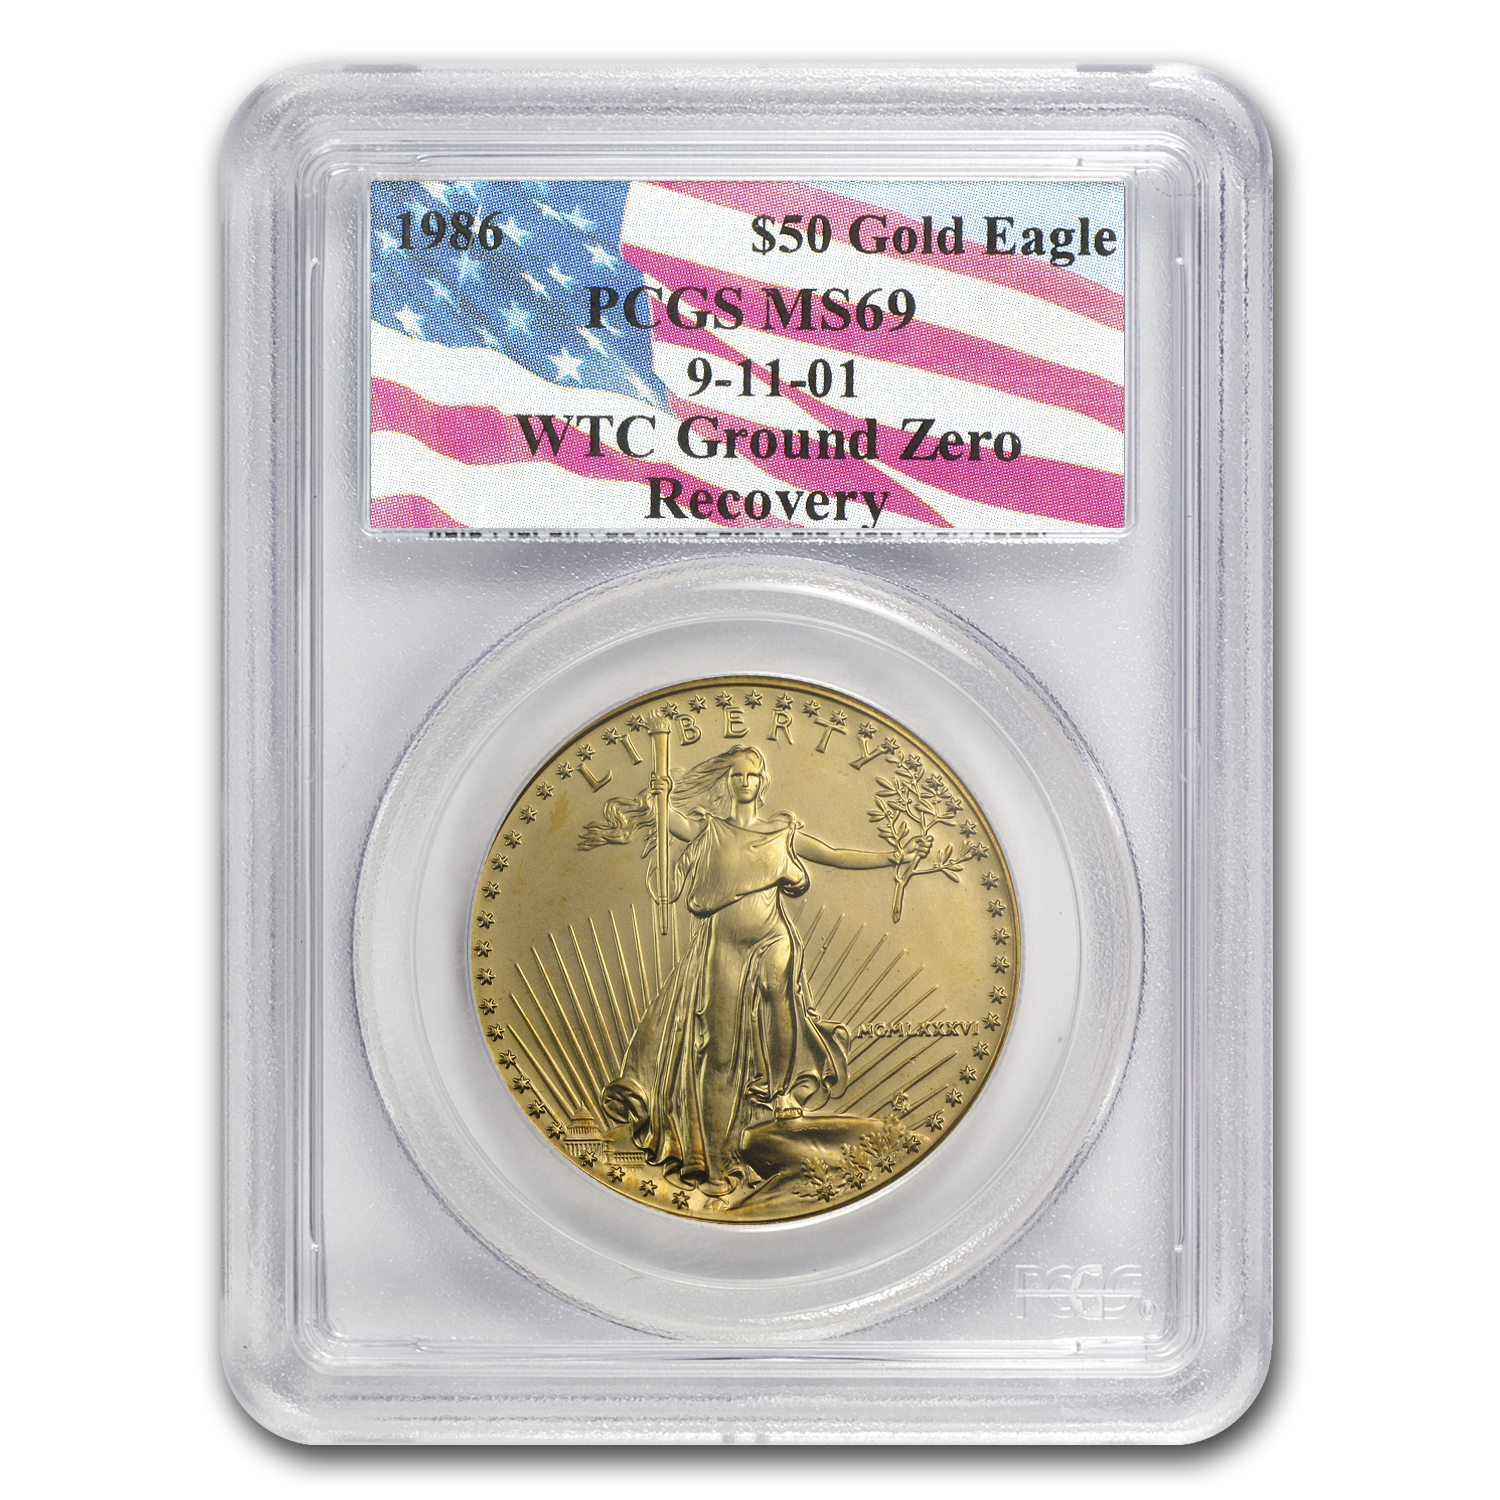 1986 1 oz Gold American Eagle MS-69 PCGS (World Trade Center)